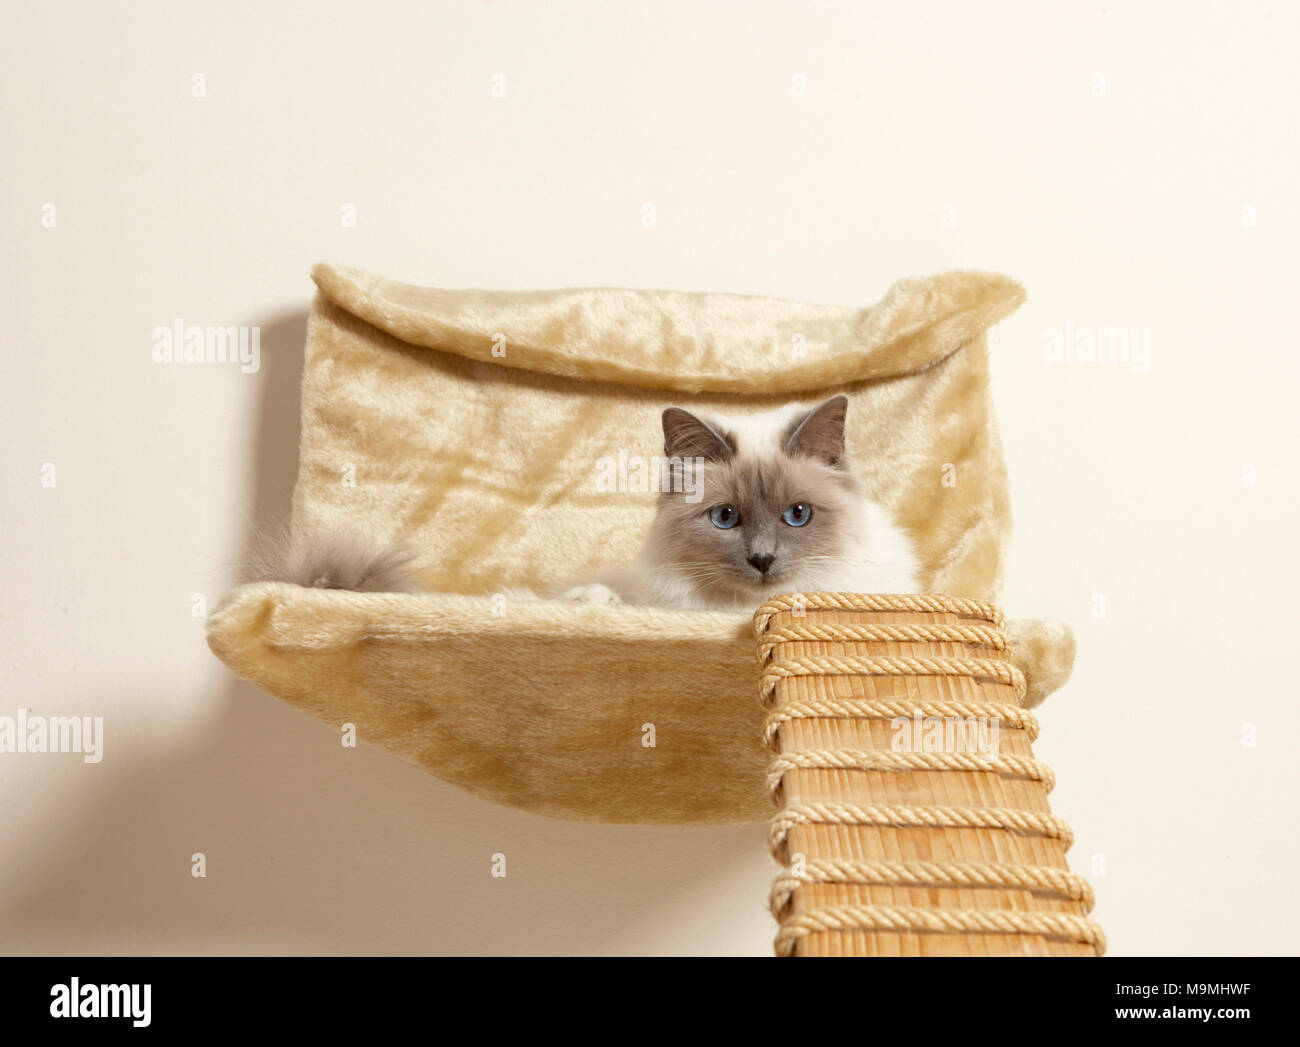 Sacred Birman. Adult cat lying in a wall mounted pet bed, with ladder. Germany - Stock Image